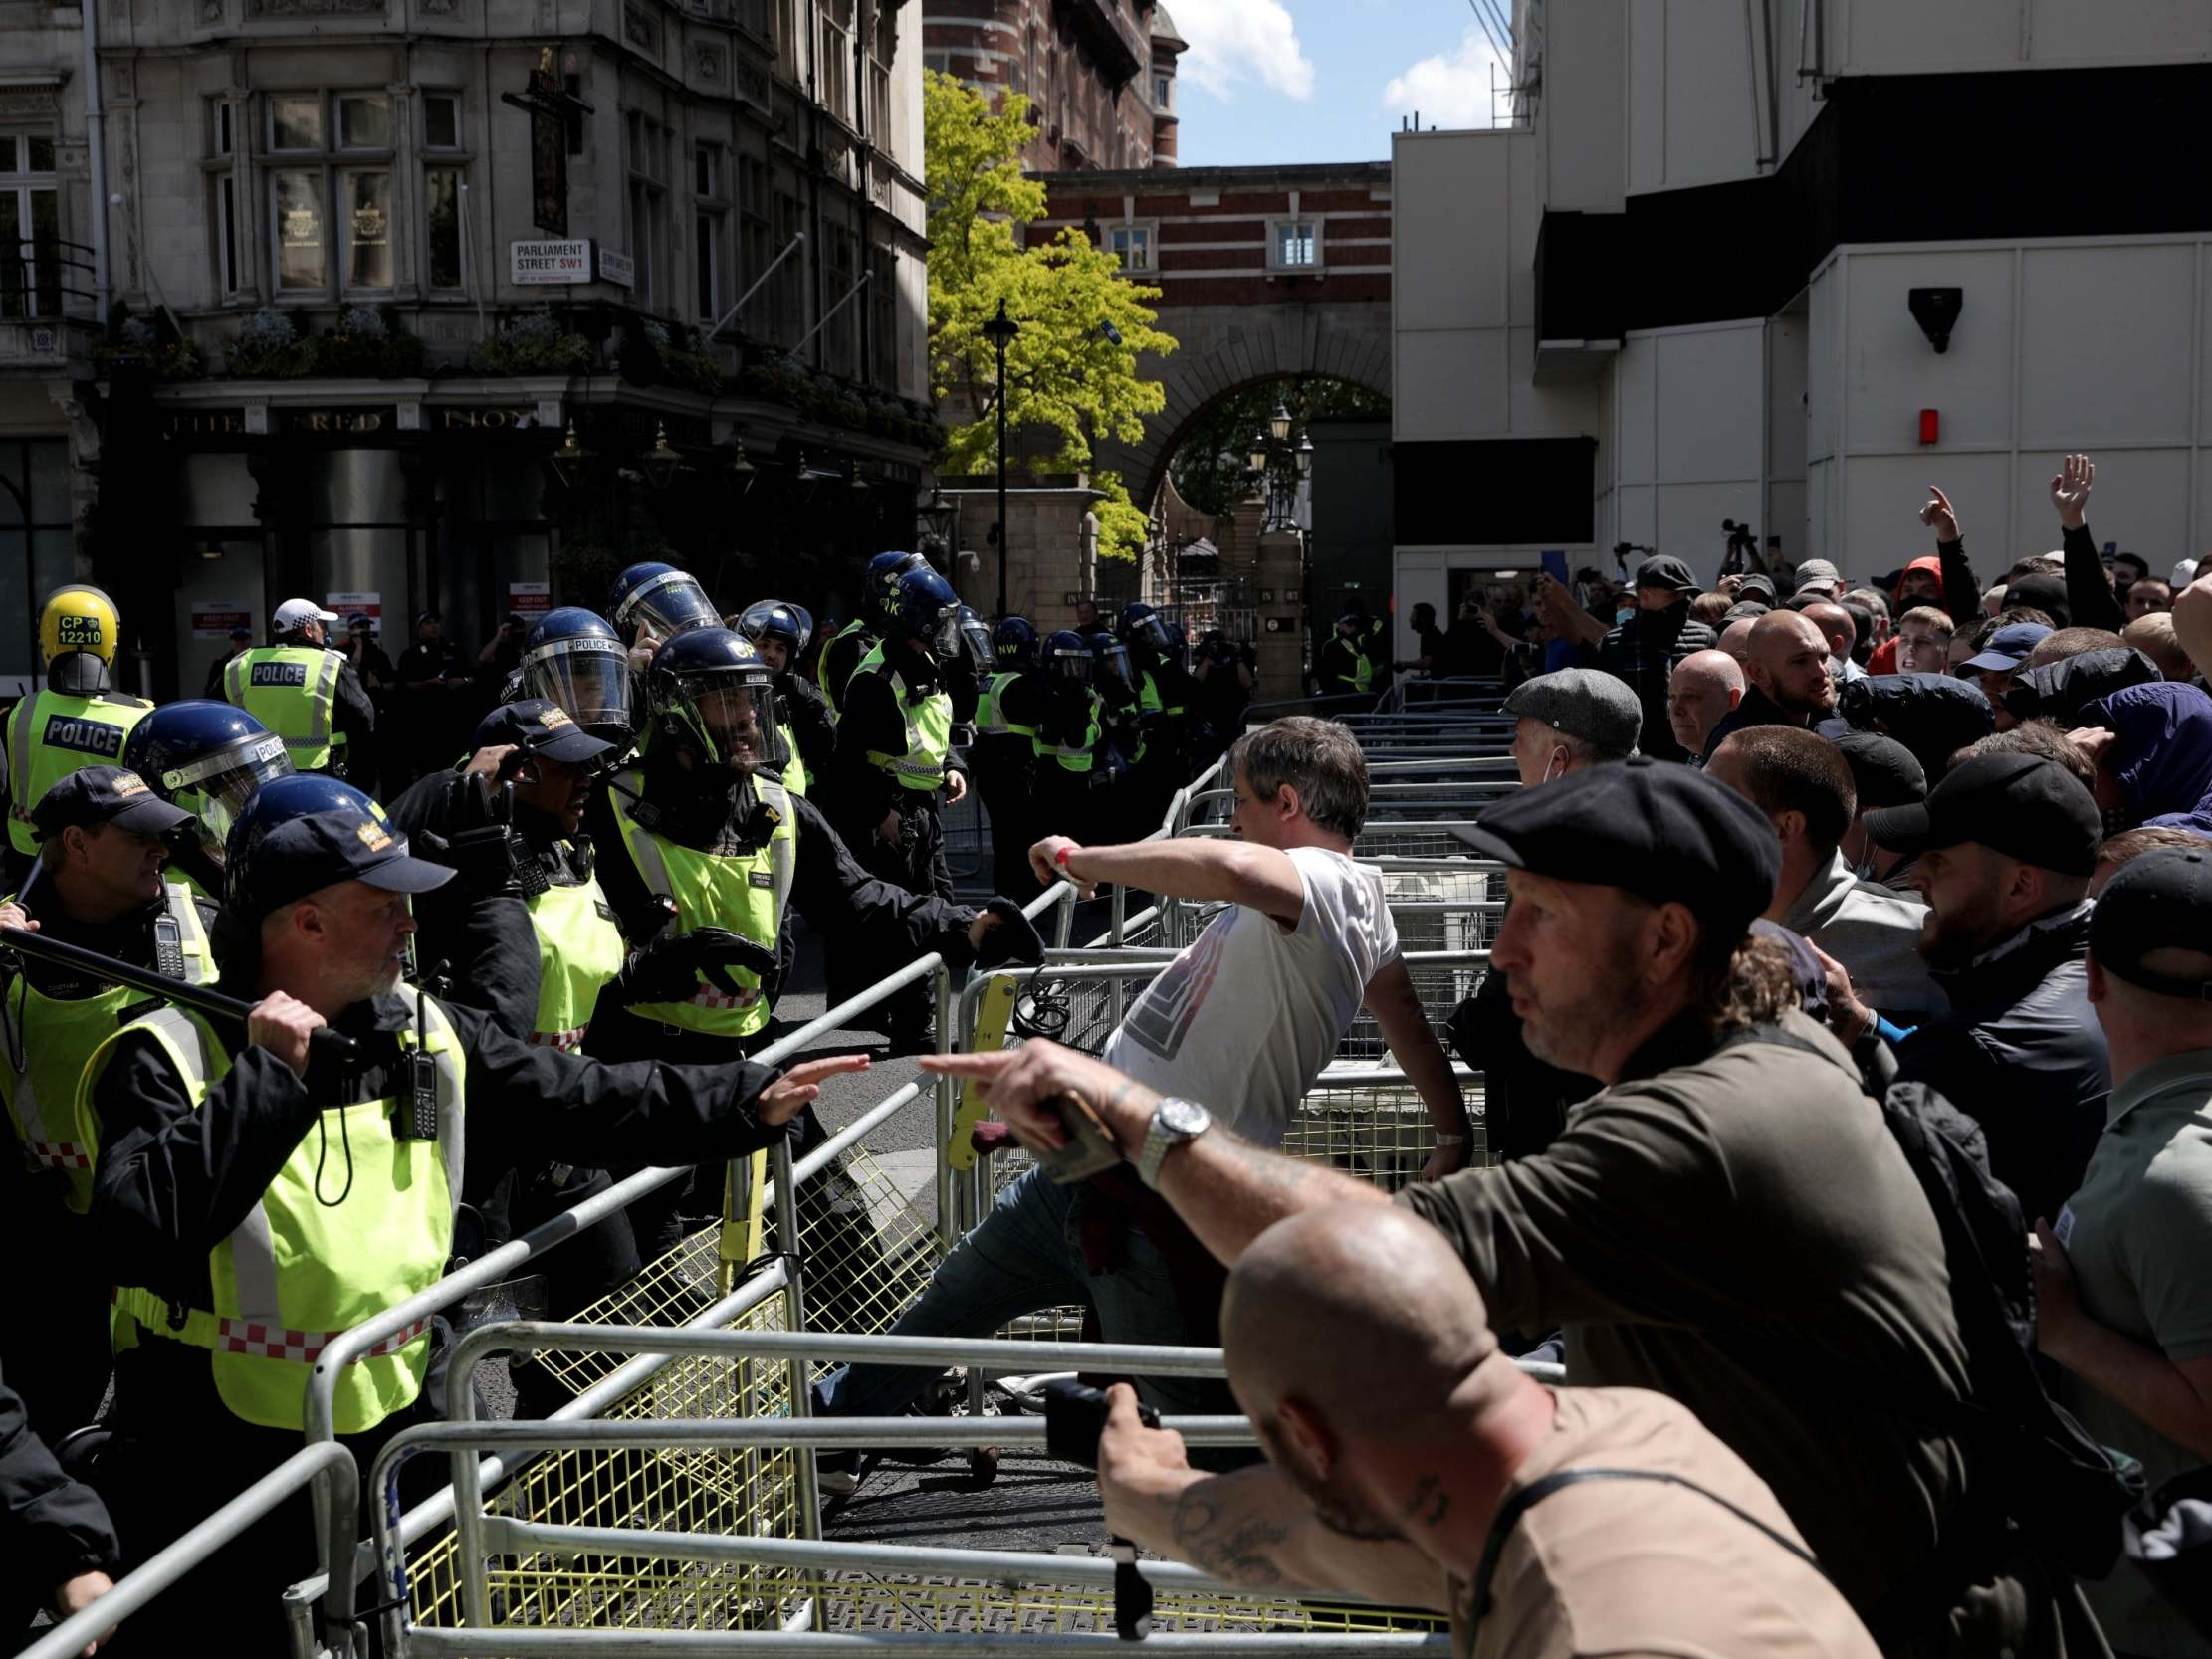 London protests live: Latest updates as Met warns some 'likely to be coming to capital with weapons' thumbnail